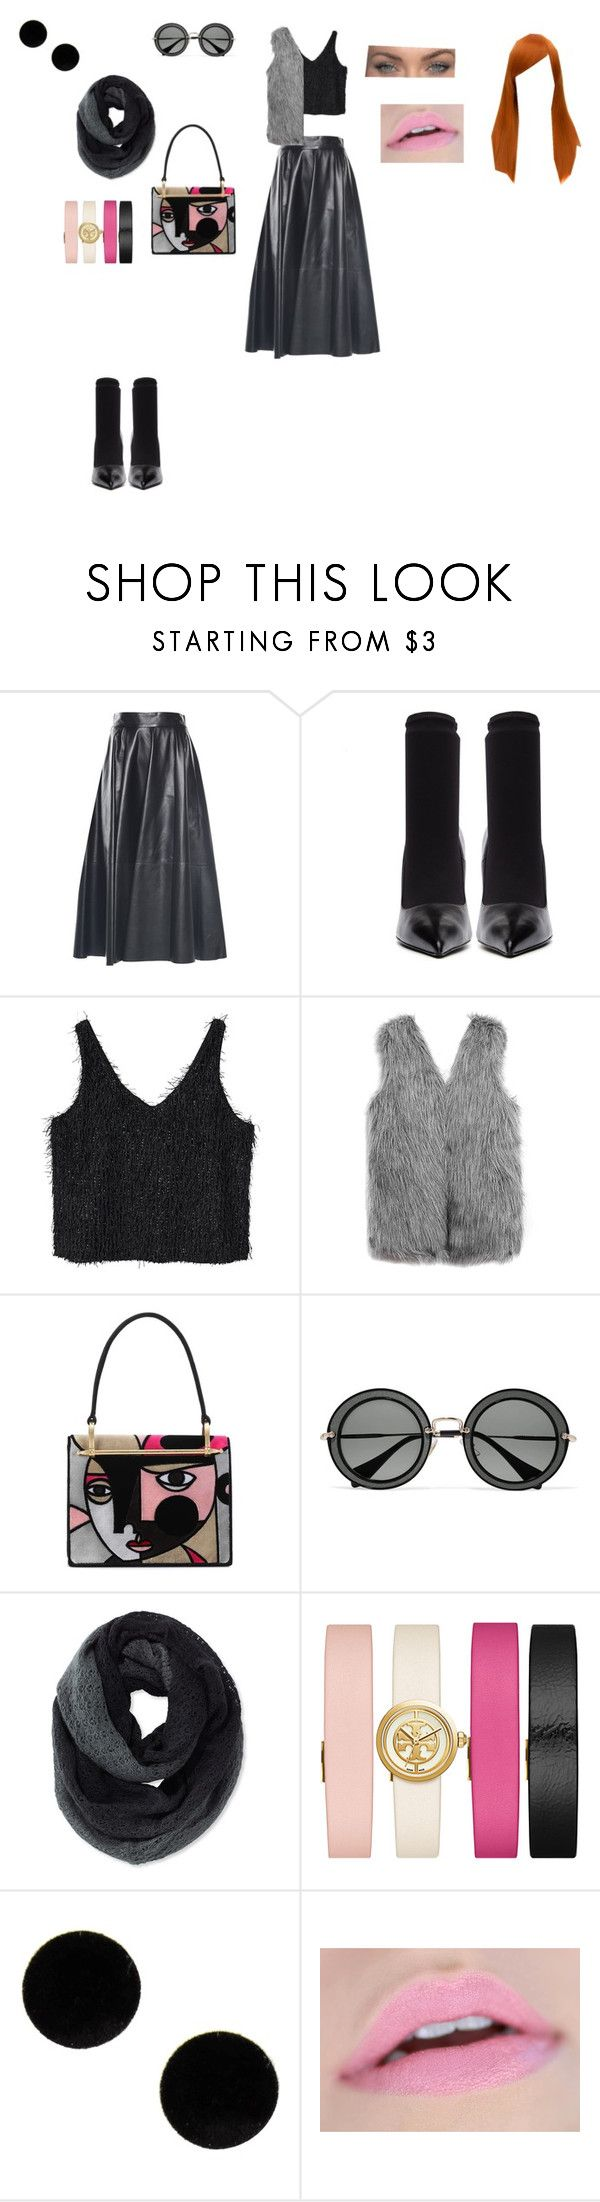 """chic outfit"" by helena94-1 on Polyvore featuring Balenciaga, MANGO, WithChic, Prada, Miu Miu, Pistil, Tory Burch, MM6 Maison Margiela and polyvorefashion"